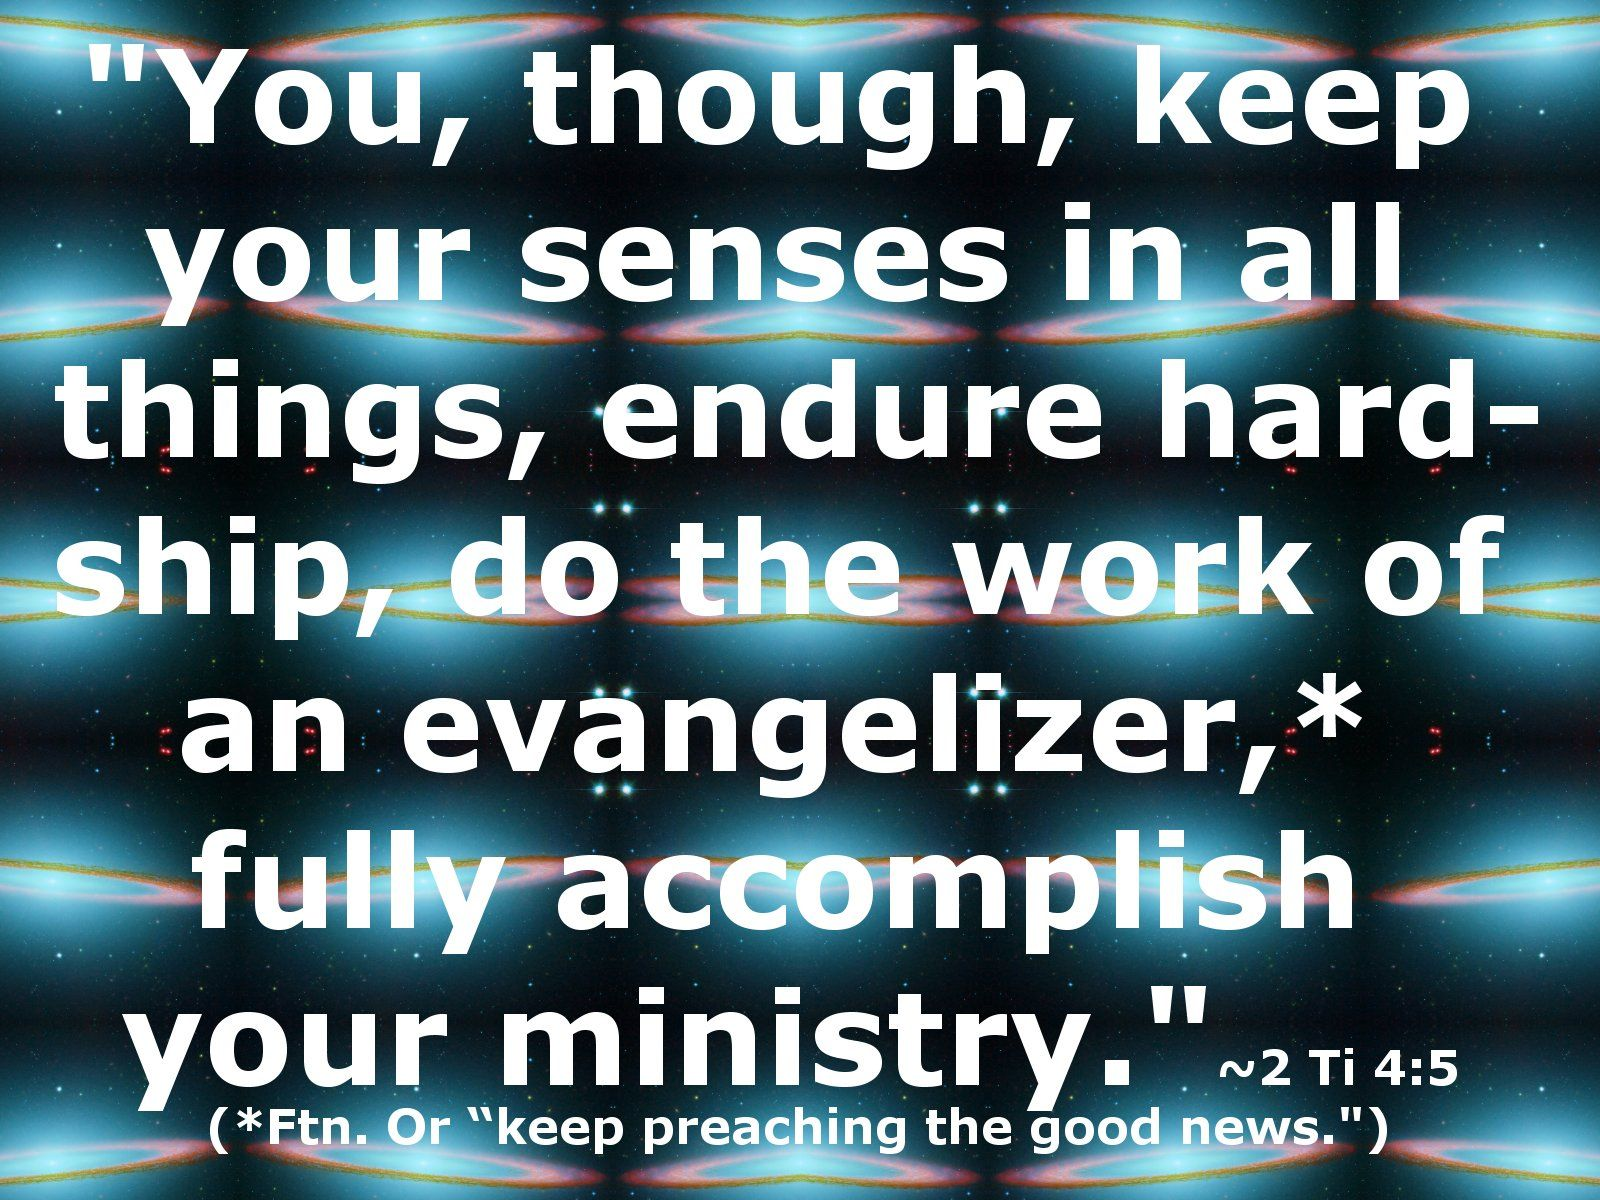 """You, though, keep your senses in all things, endure hardship, do the work of an evangelizer,* fully accomplish your ministry."" ~ 2 Ti 3:5 NWT 13 (*Ftn. Or ""keep preaching the good news.)"""